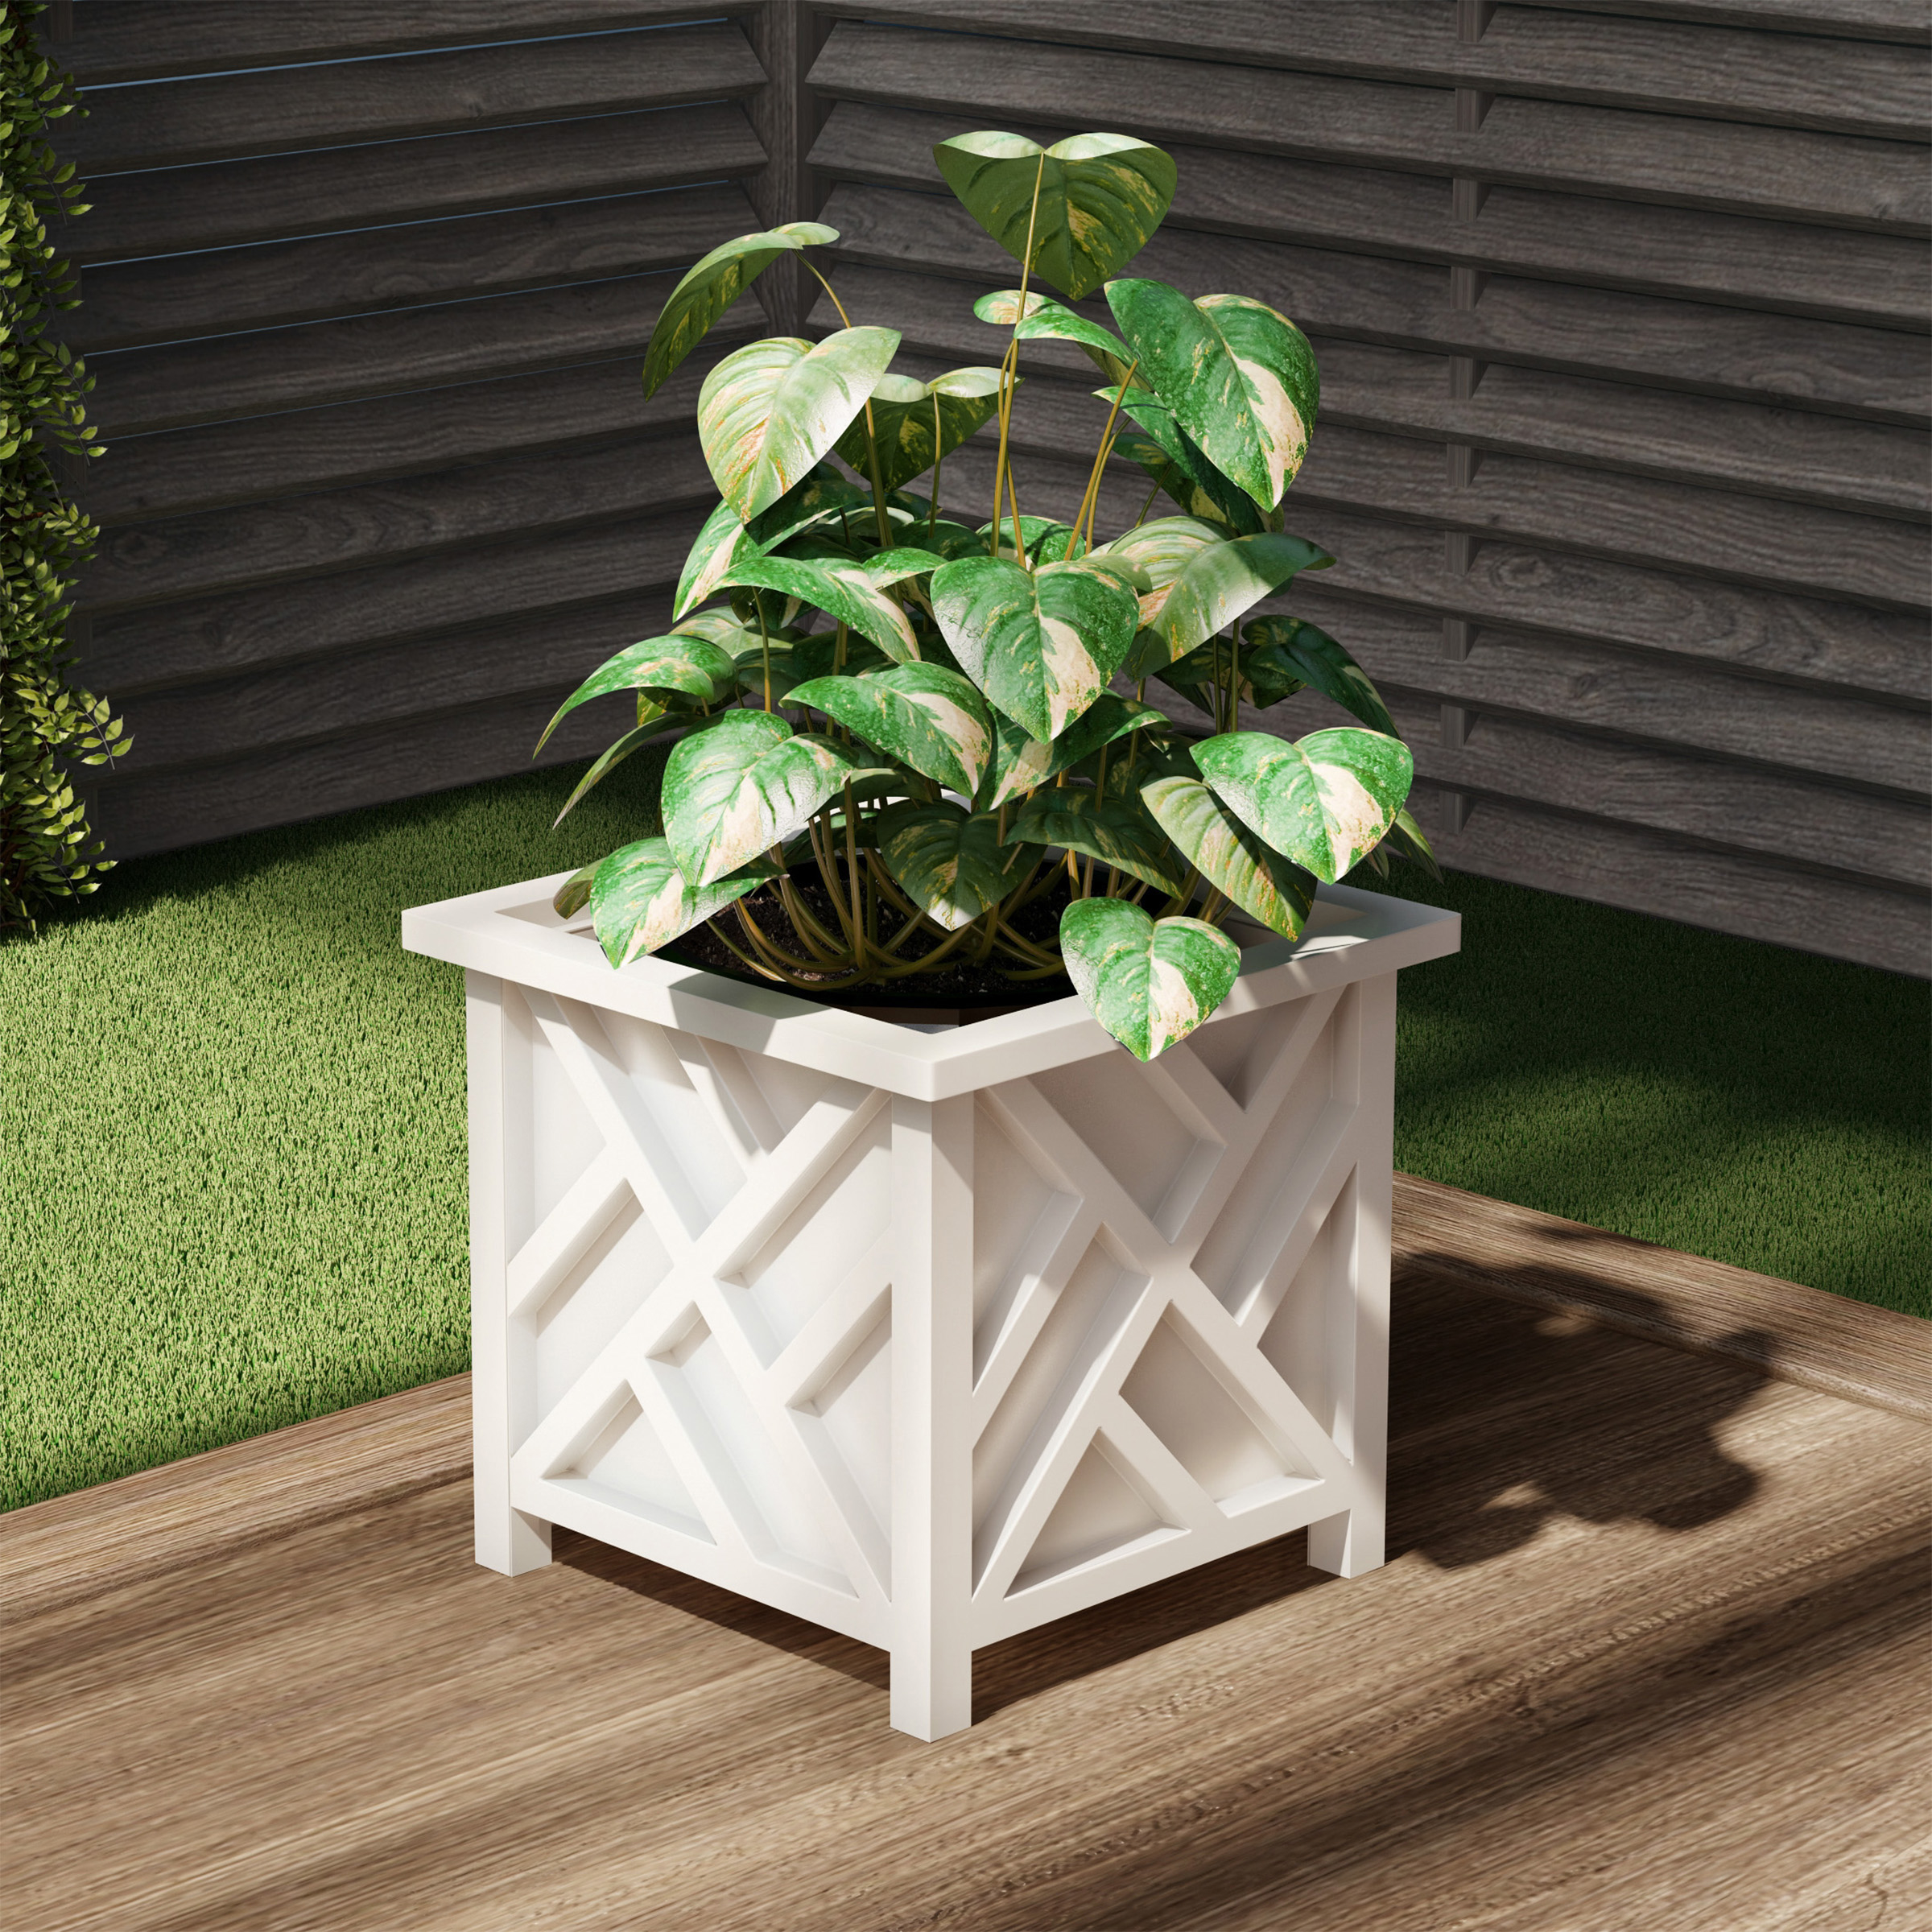 pure garden square planter box black lattice container for flowers plants bottom insert holds soil outdoor pot for garden patio white from